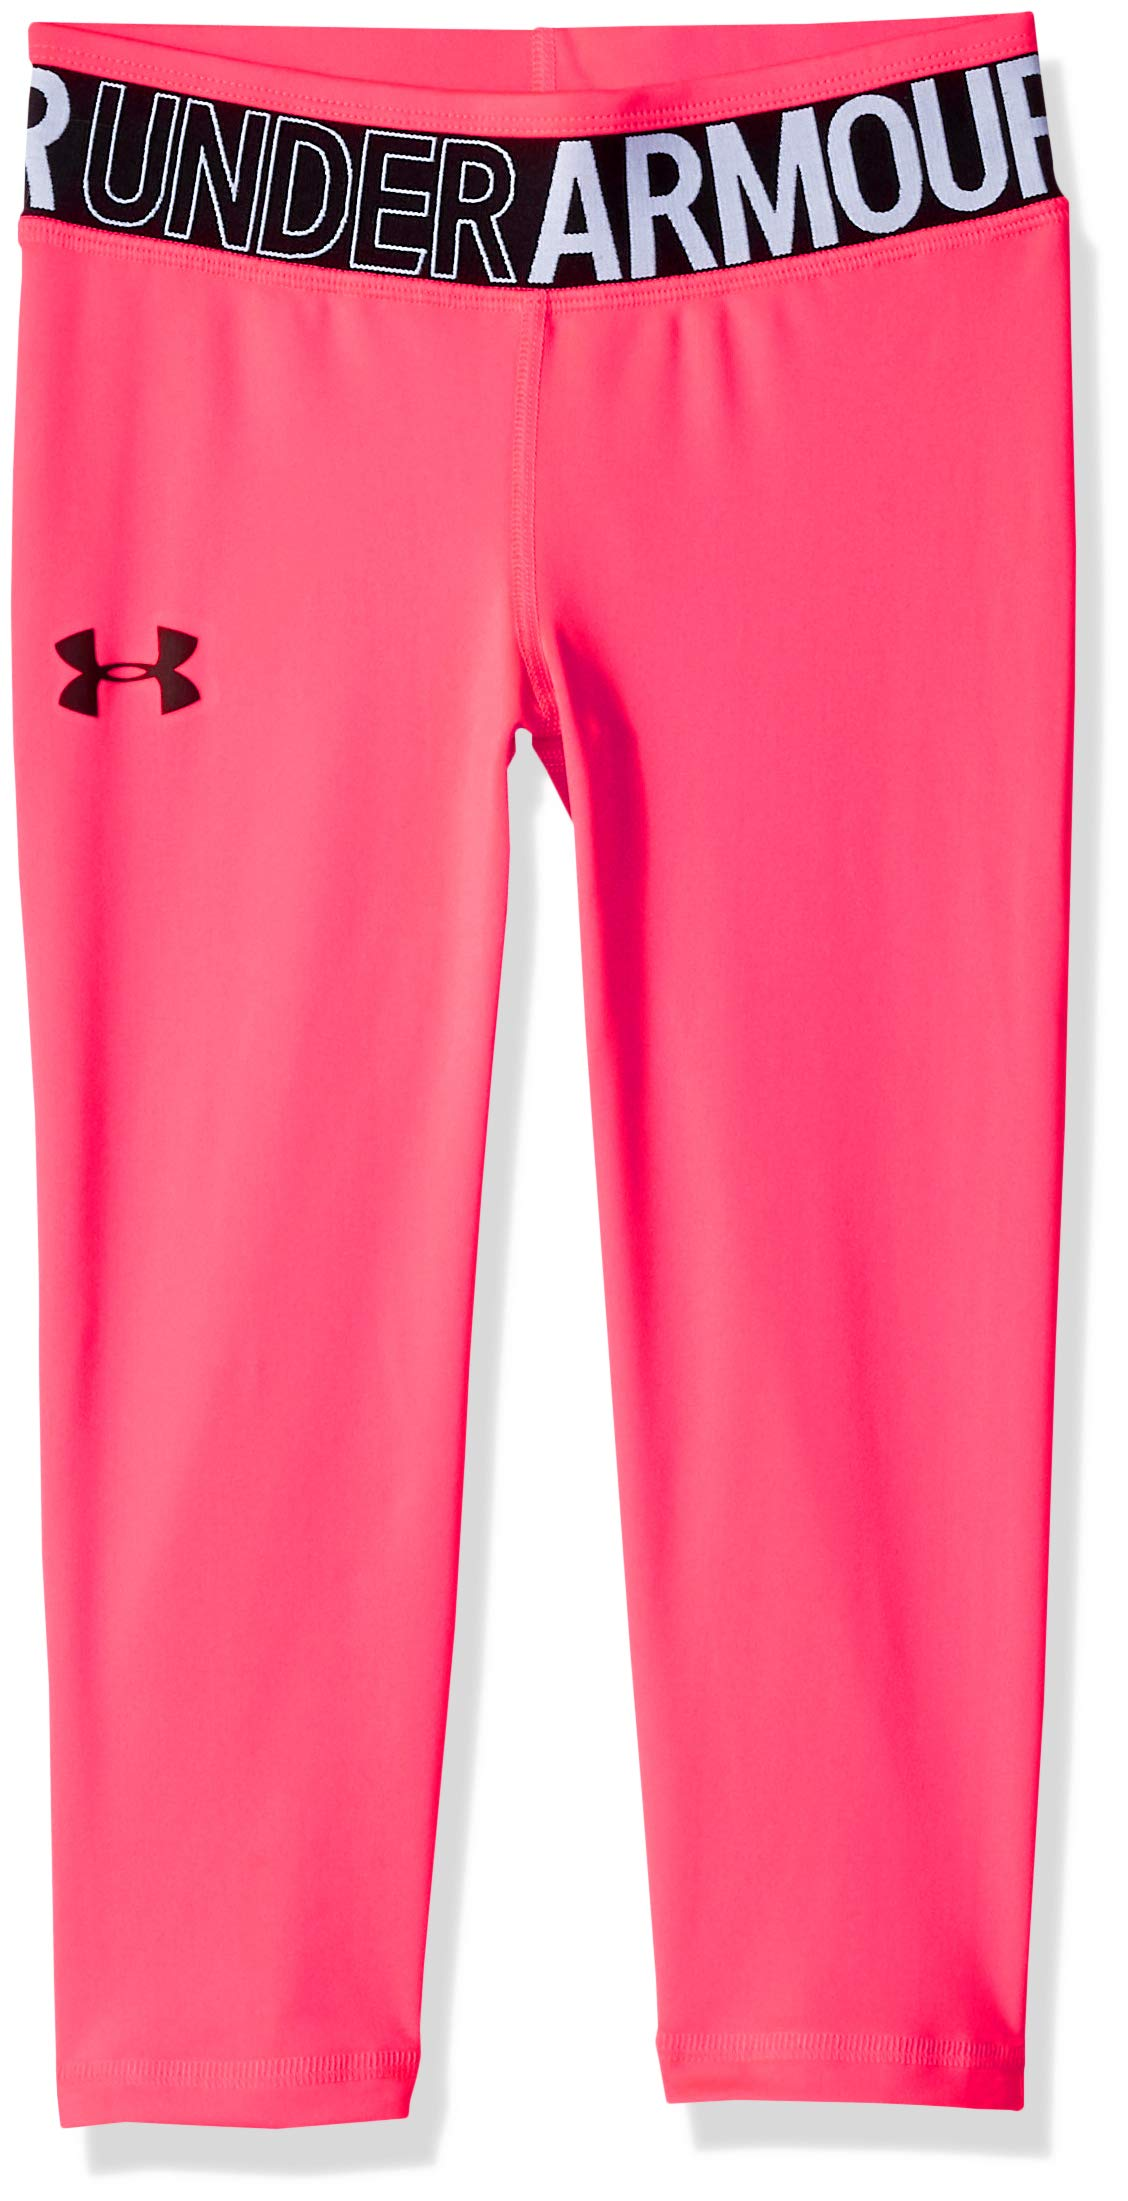 Under Armour Girls' HeatGear Armour Capri, Penta Pink (975)/Black, Youth X-Large by Under Armour